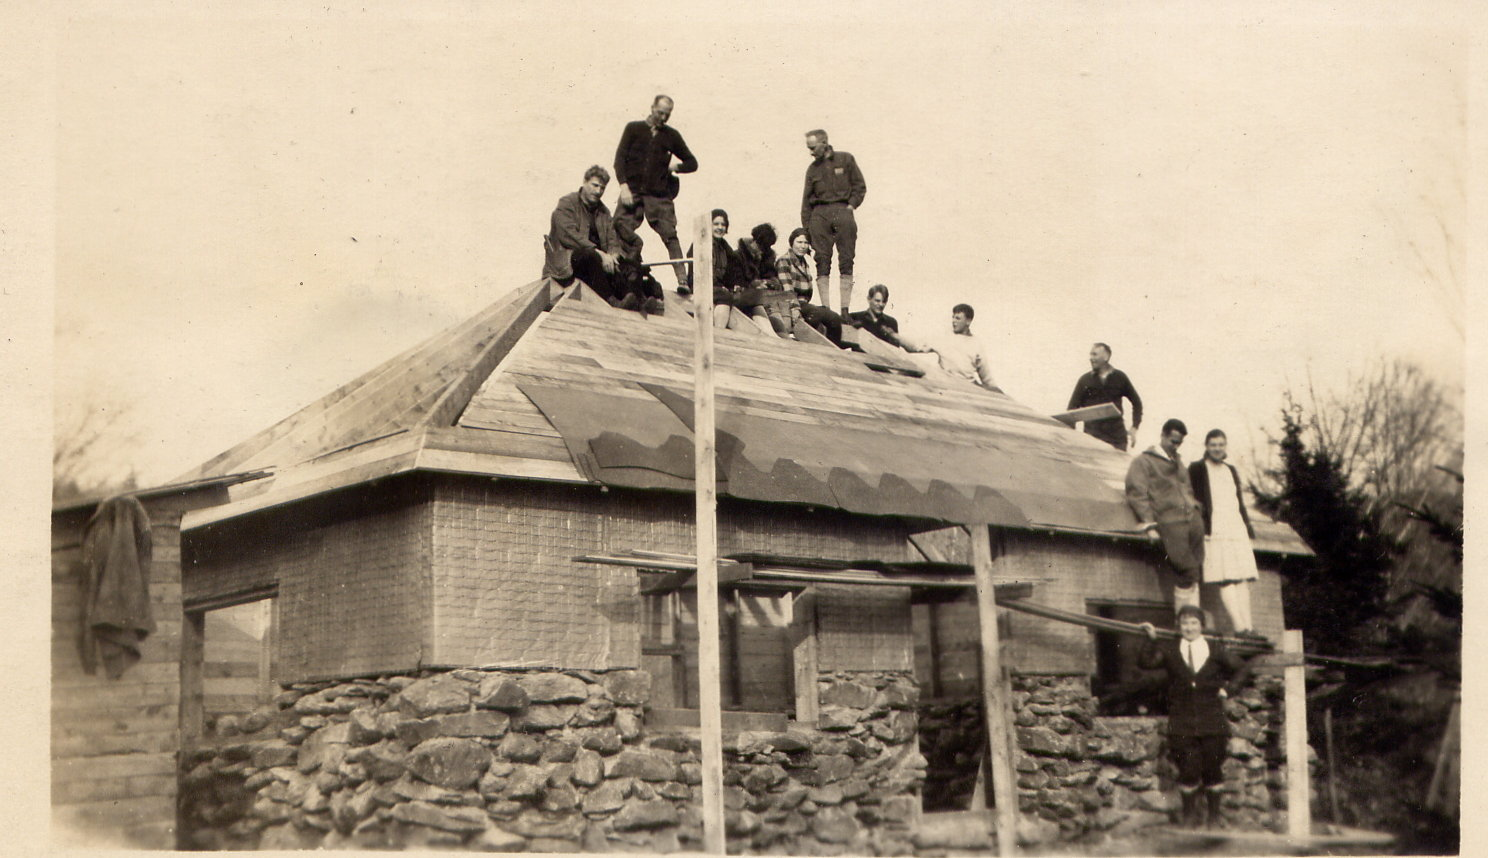 1929, Bottom left counter c'wise. Mrs.Ernest Smith, Dr Twichell, M/M Deryea, Mrs. Salls, on roof Mr. Smith and K.T. Salls